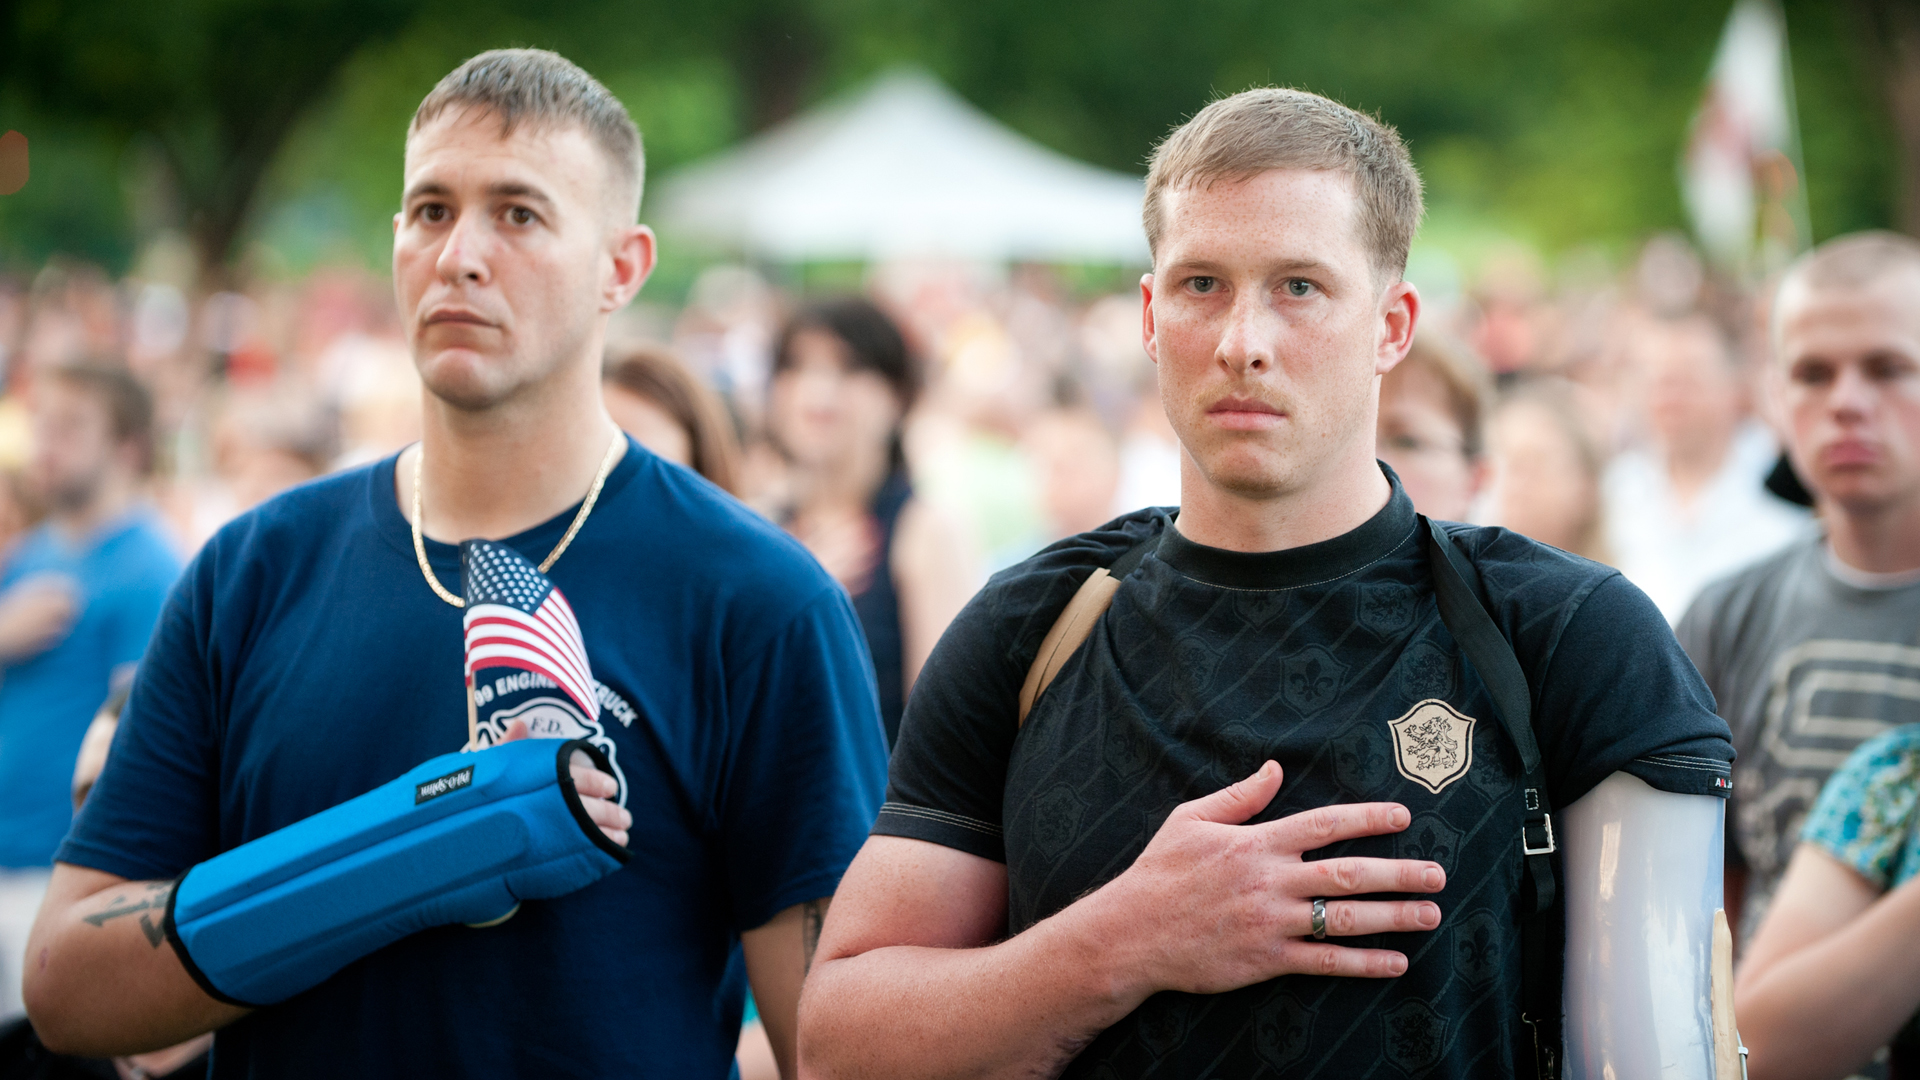 Honoring Our Wounded Warriors